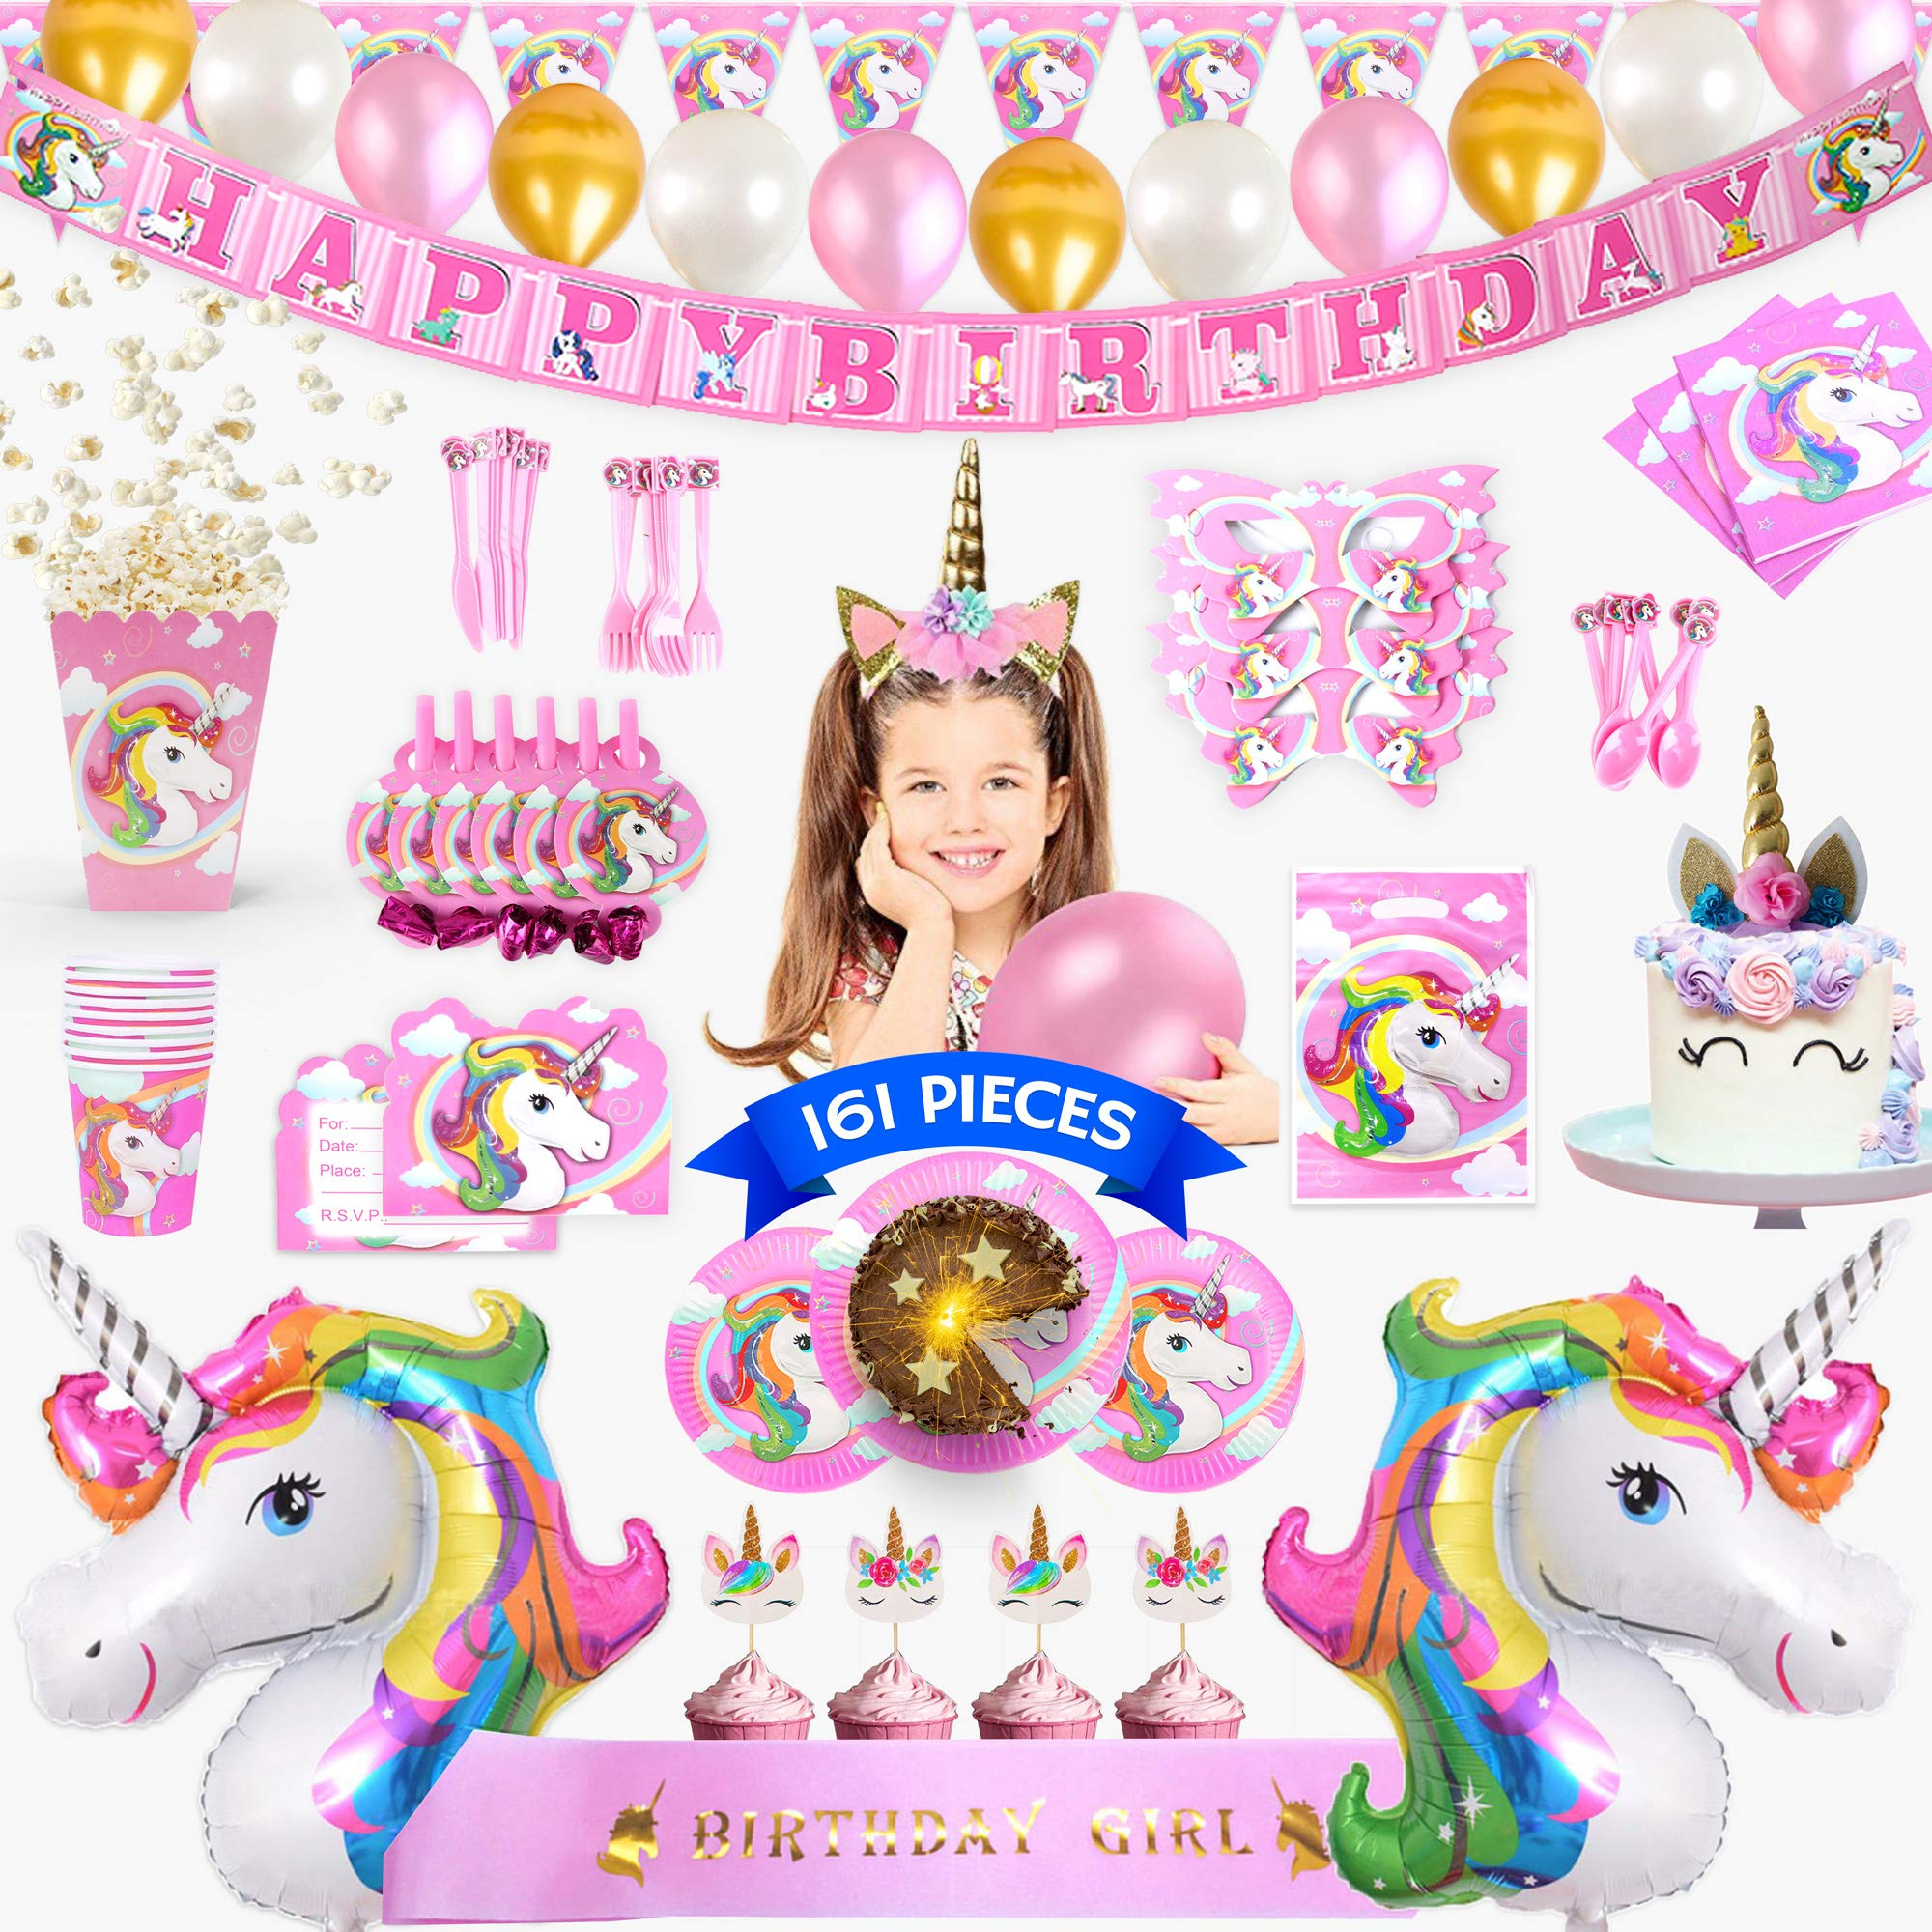 Unicorn Party Supplies - 161 Pieces Rainbow Girls Birthday Supplies Pack with Unicorn Face Masks, Pink Unicorn Headband and a Sash for Birthday Girl, Birthday Party Decorations, Unicorn Balloons, Pin the Horn on the Unicorn Game and more| Serve 10